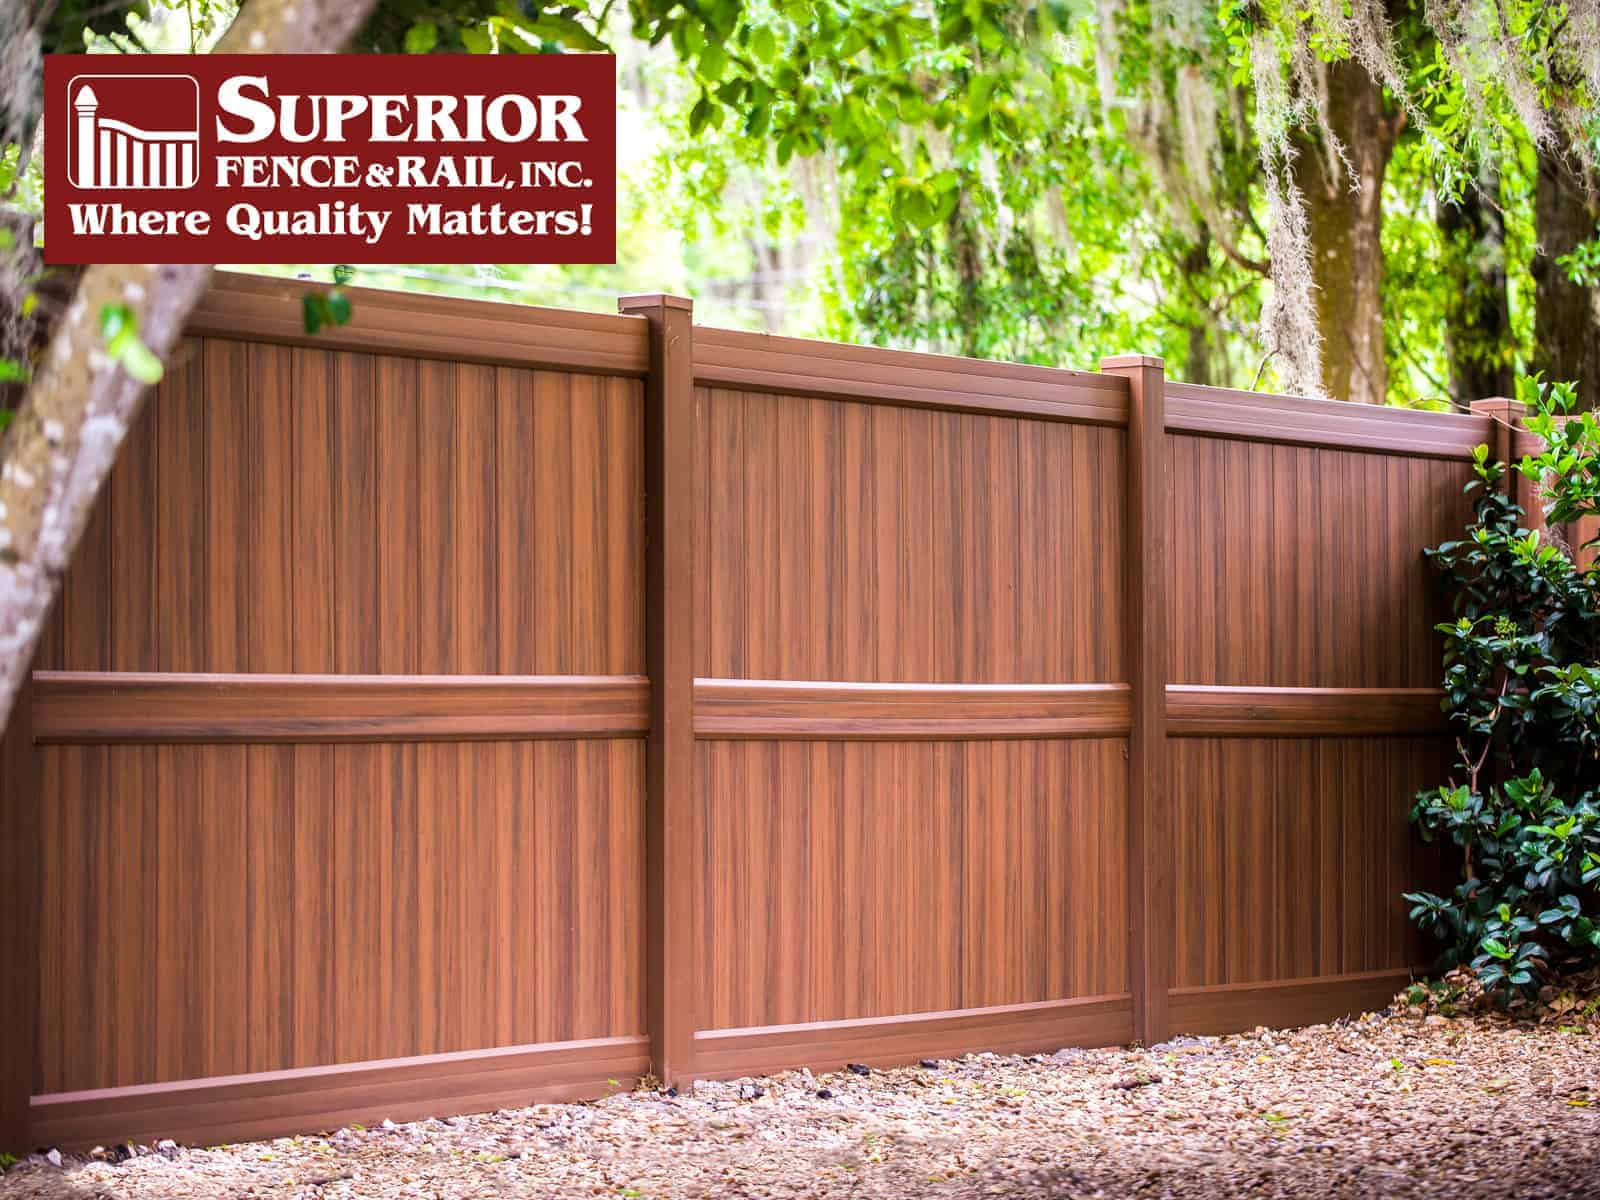 Dinwiddie fence company contractor